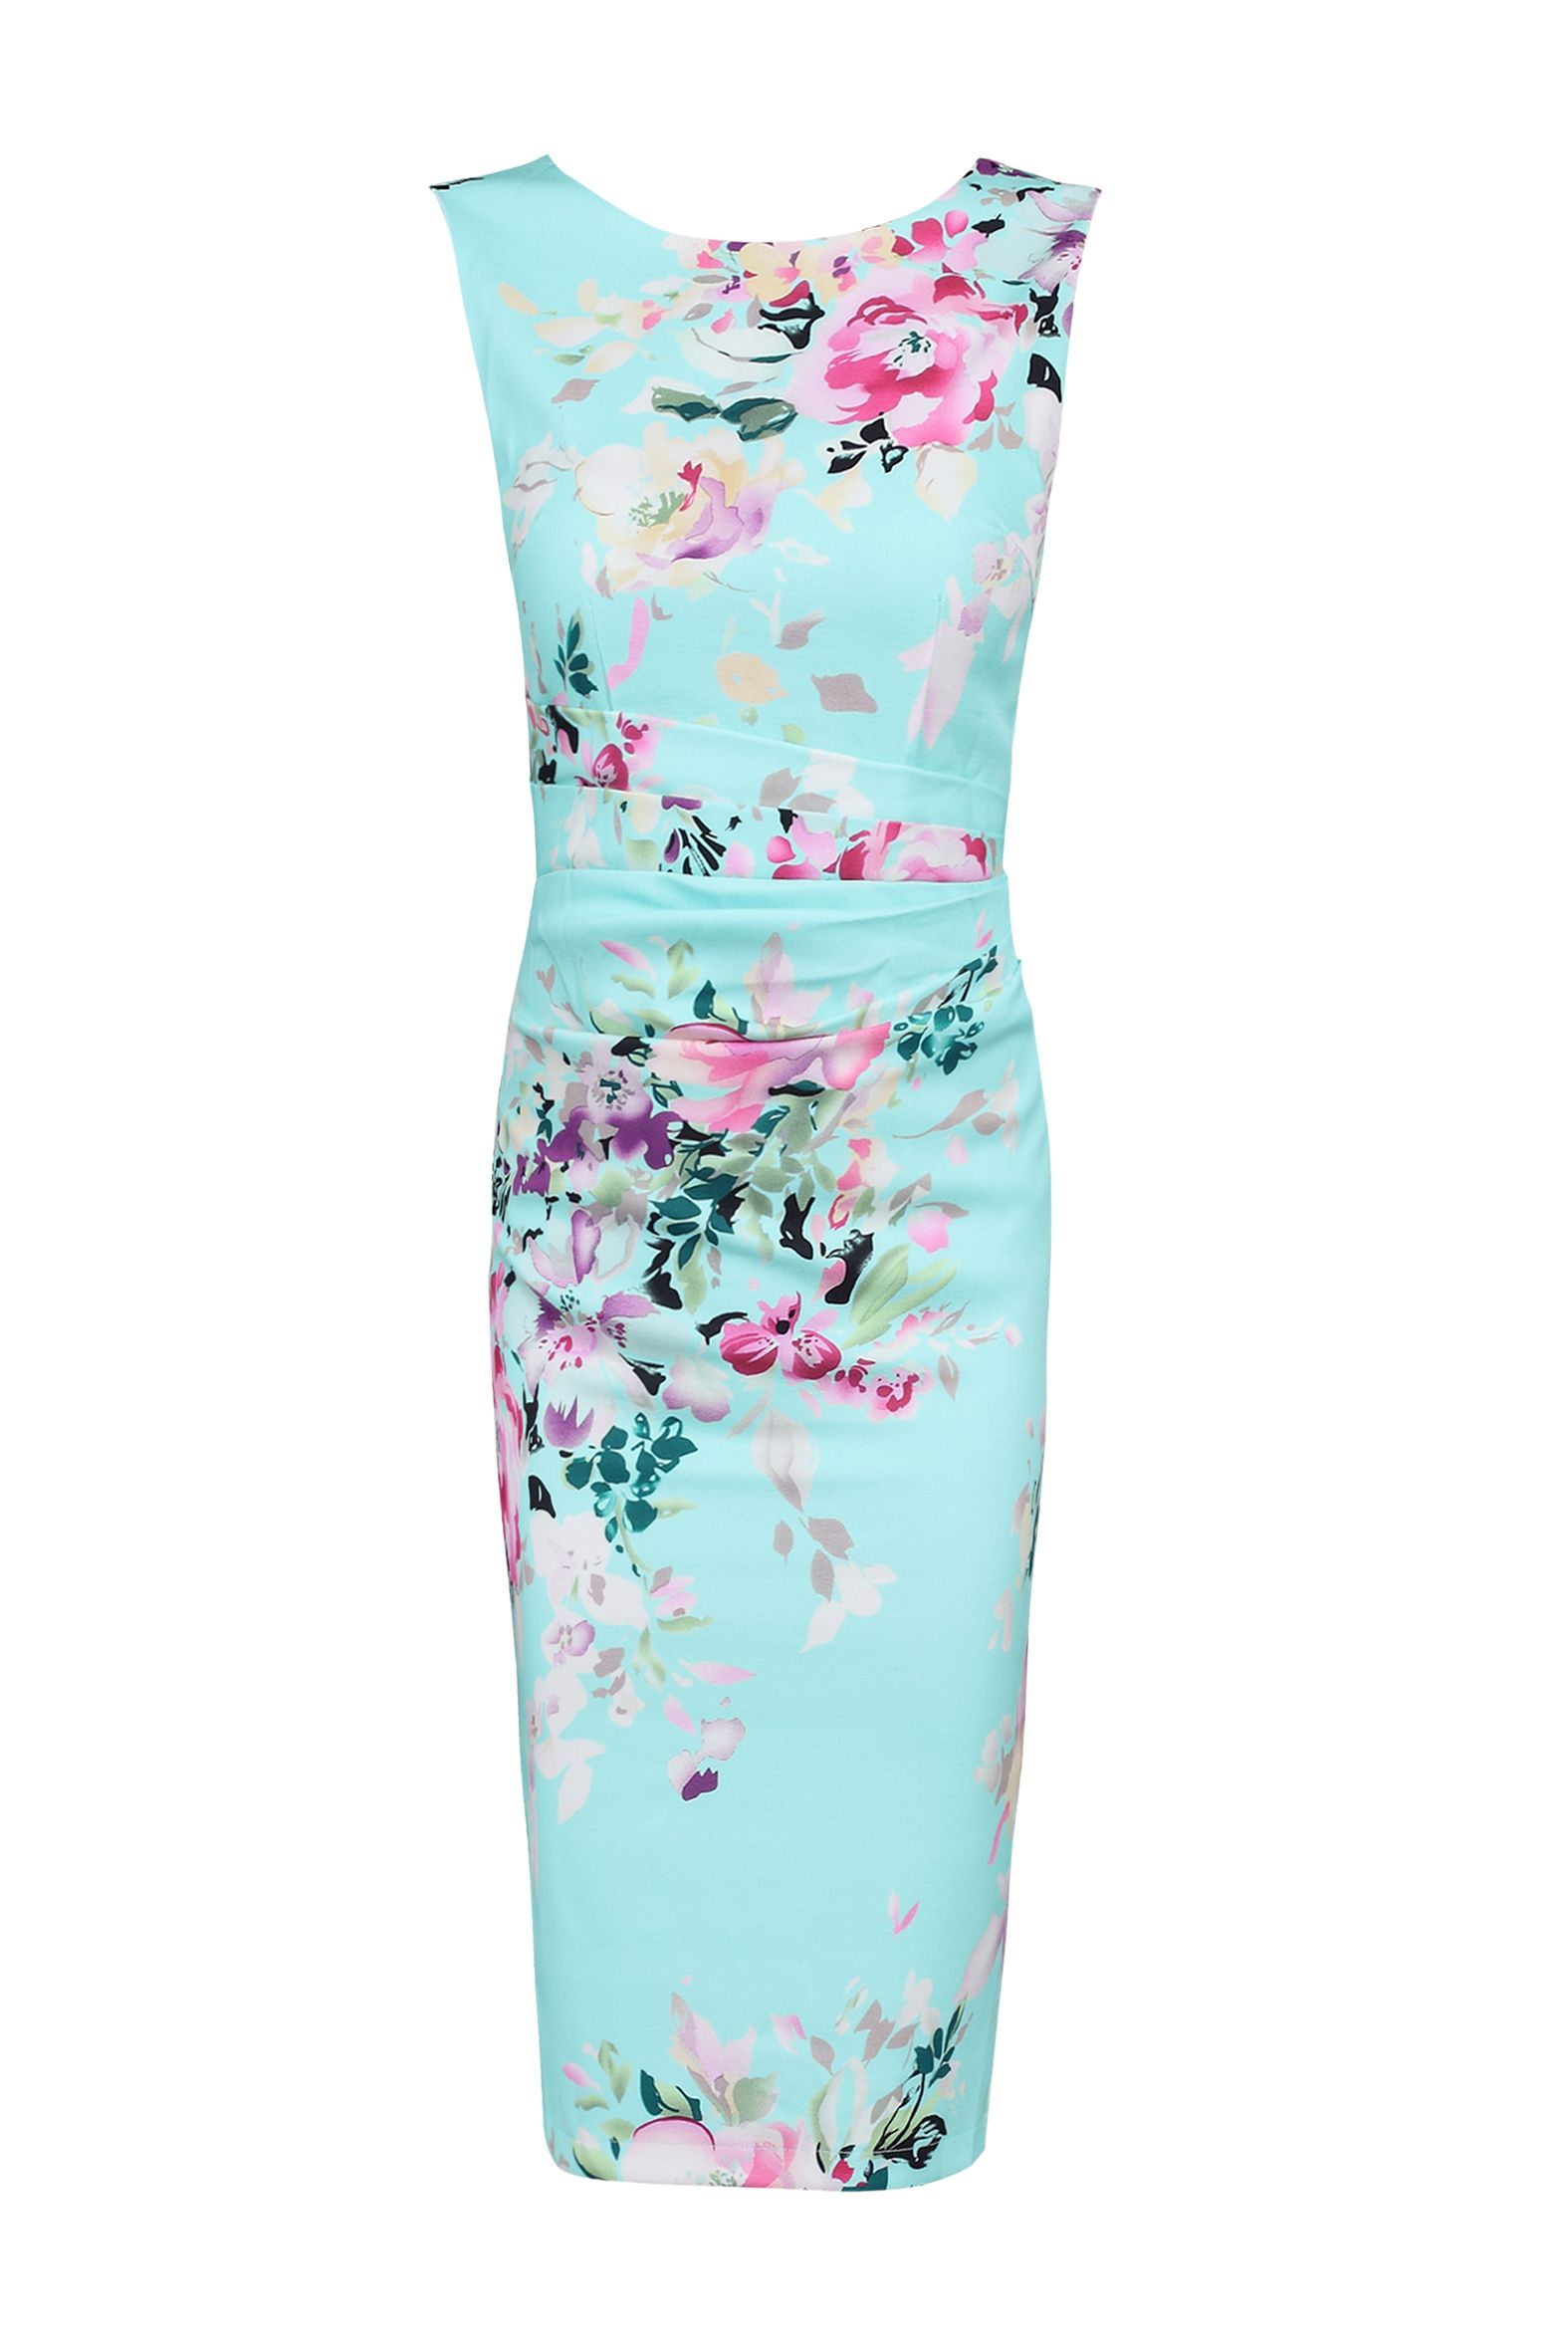 Jolie Moi Floral Print Ruched Shift Dress, Multi-Coloured